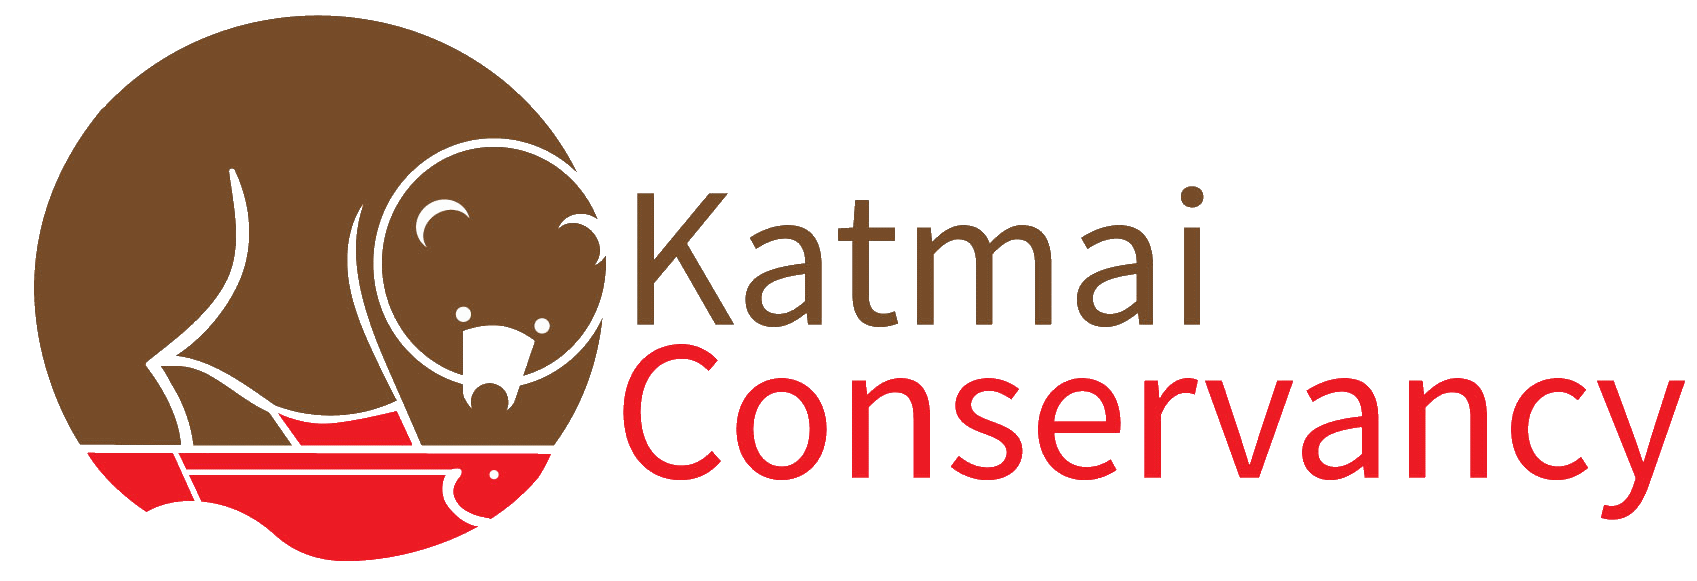 Katmai Conservancy